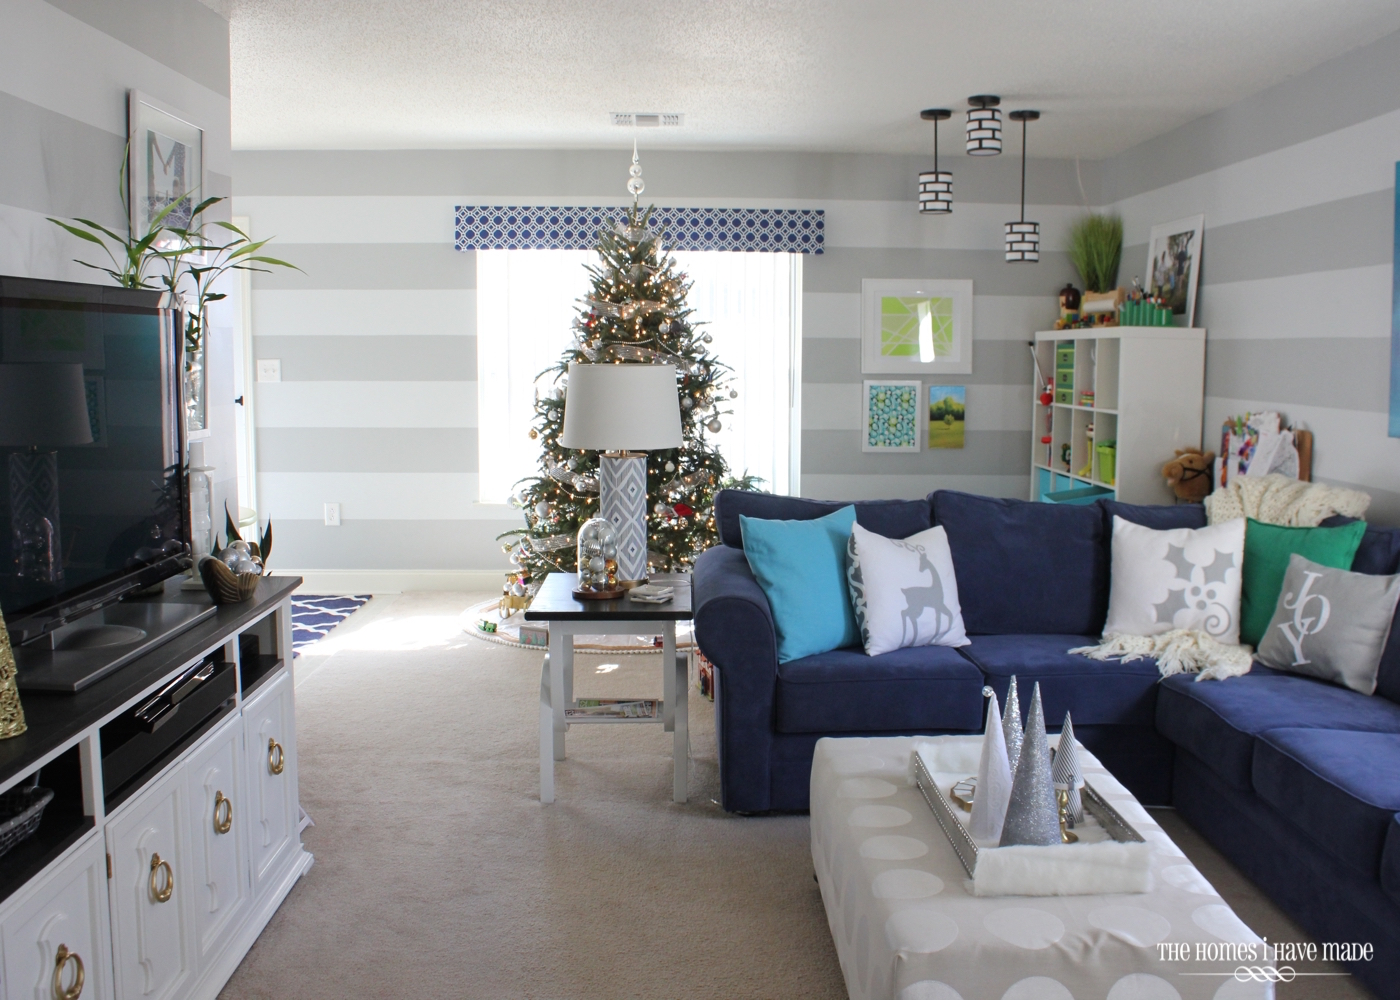 Holiday Home Tour 2014-012